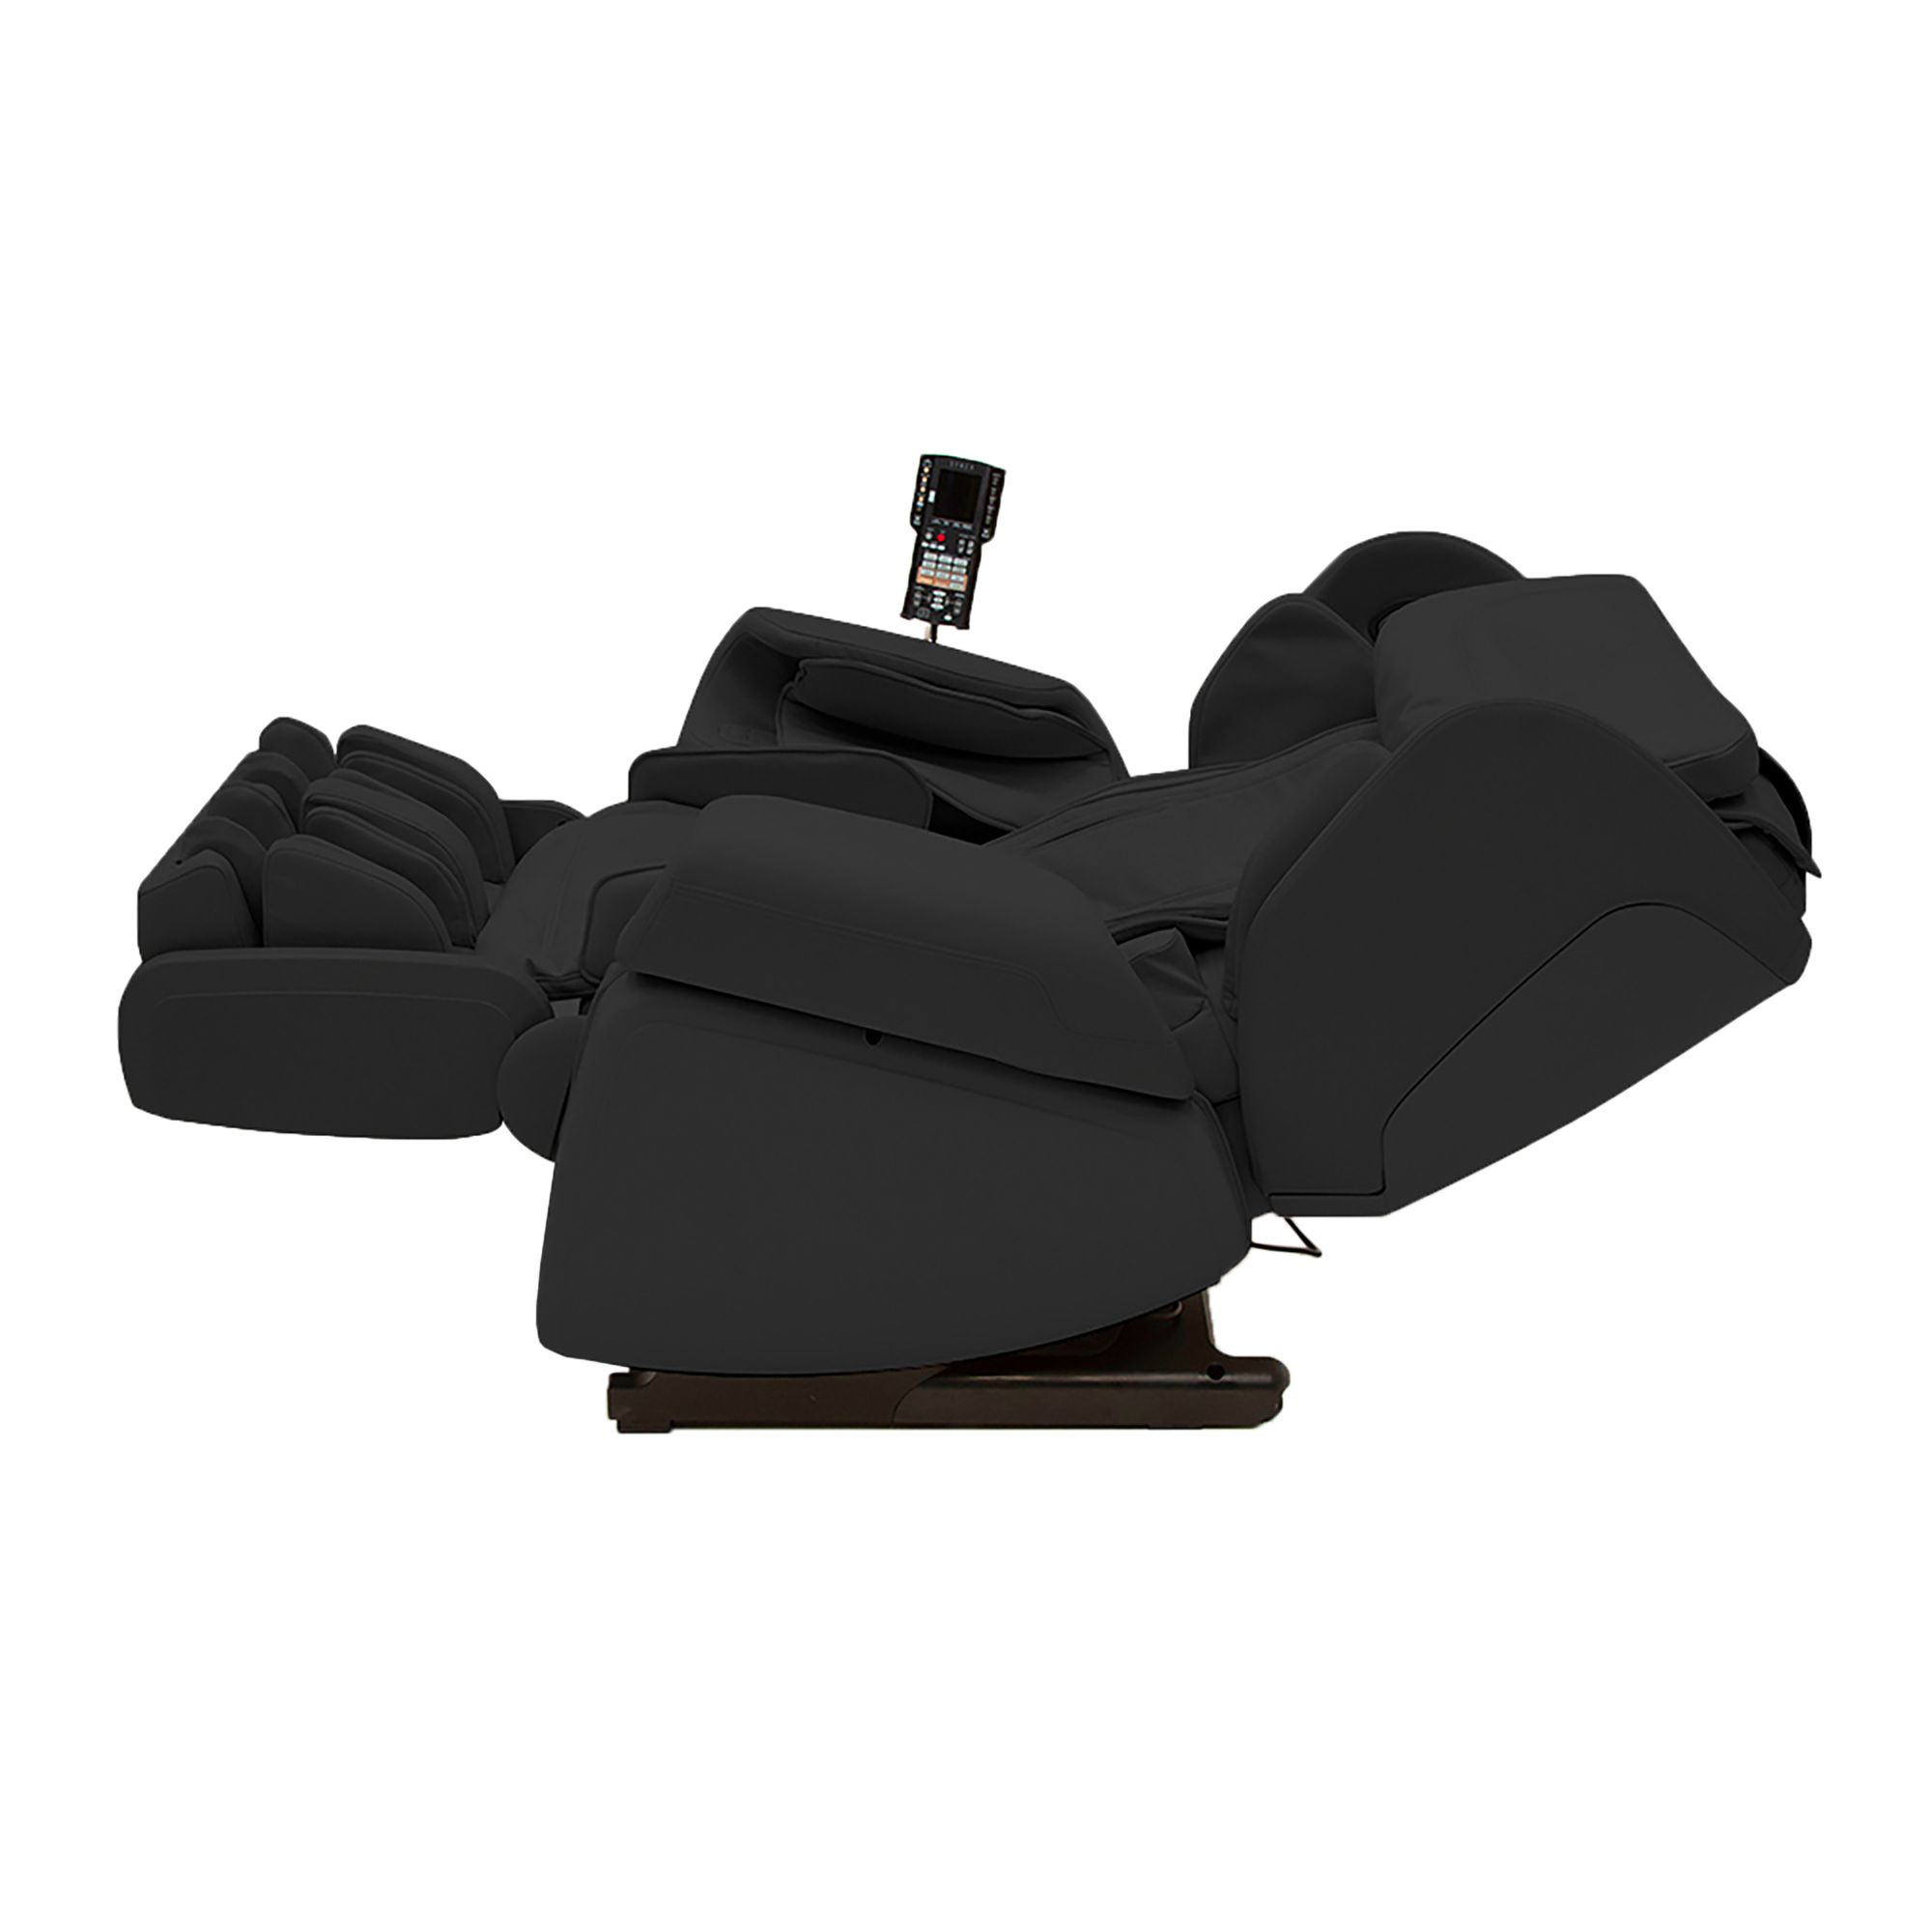 Black Kagra Massage Lounger fully reclined